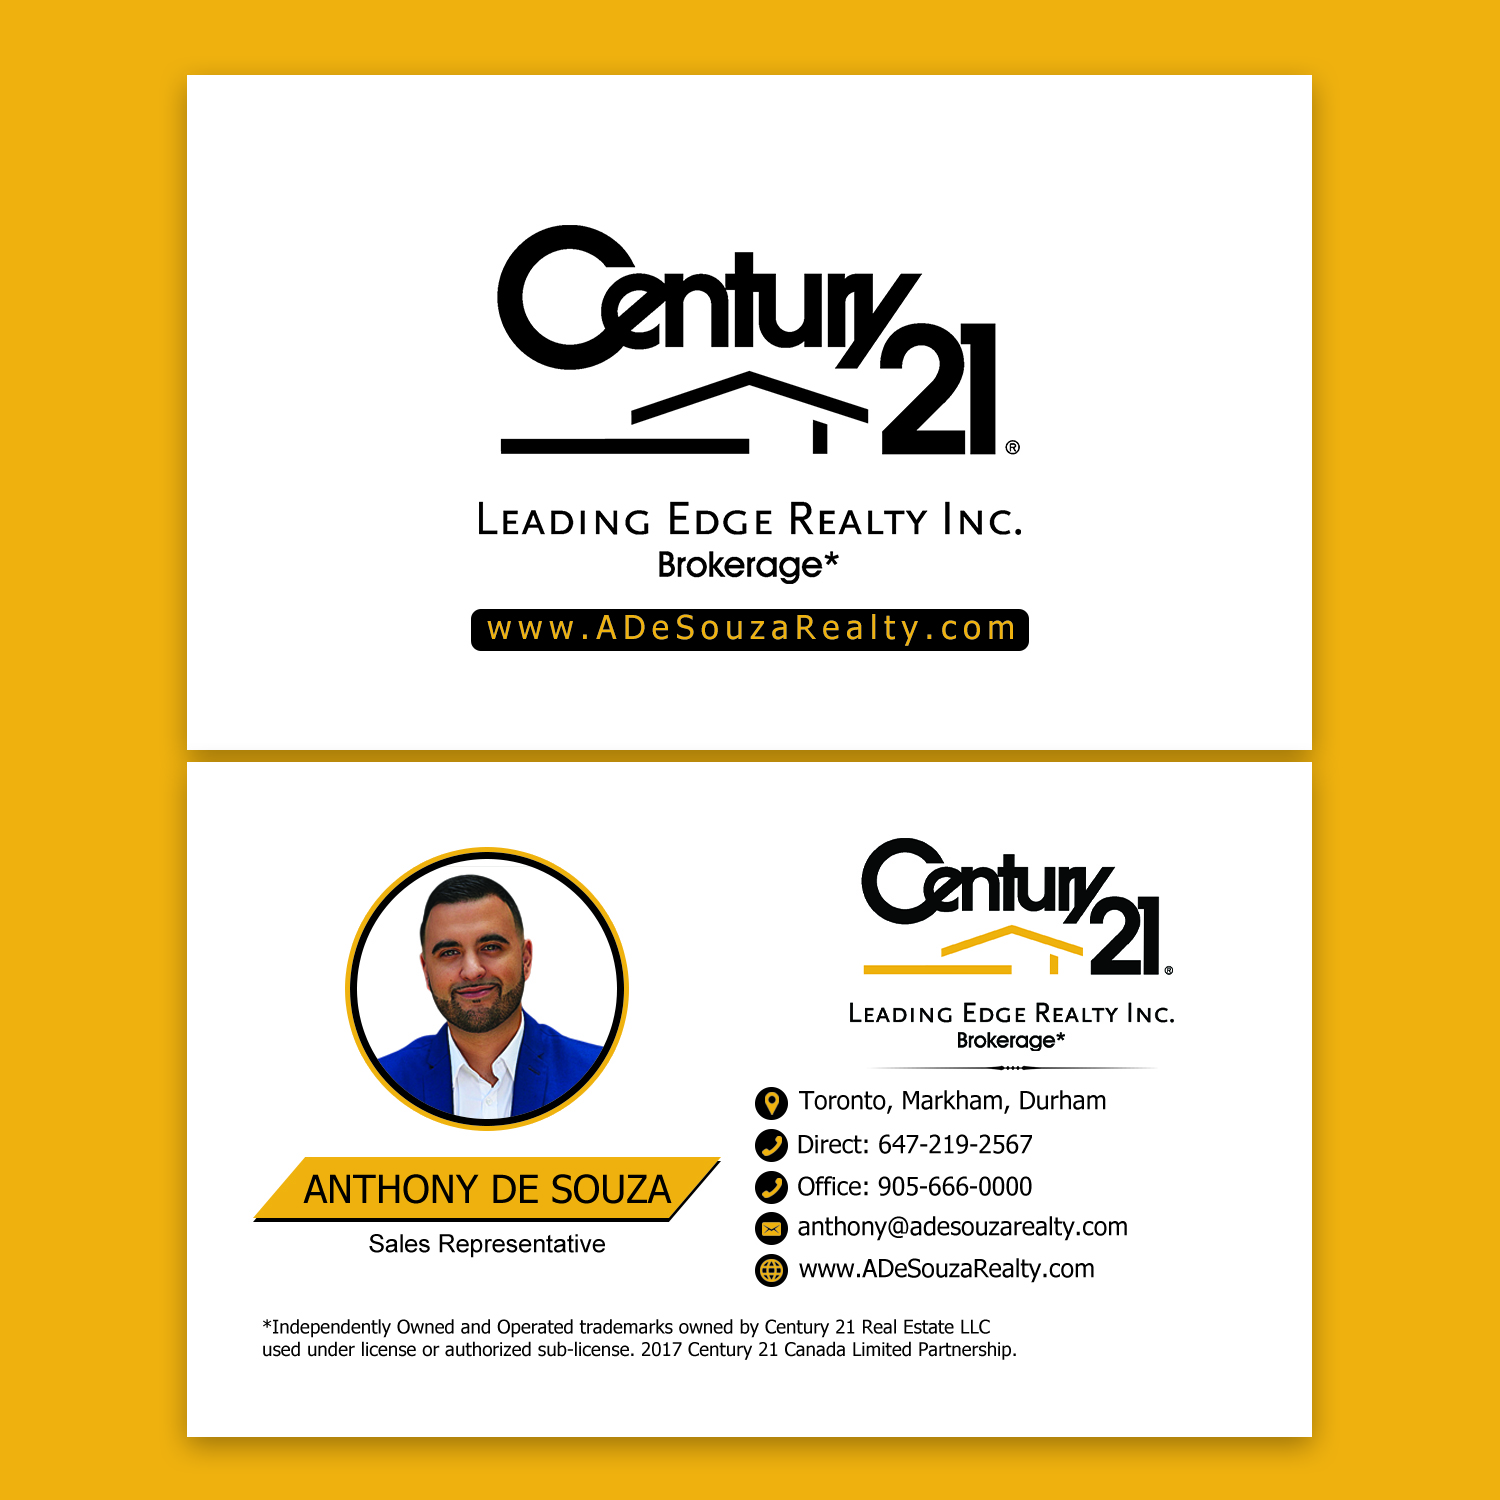 Unique century 21 real estate business cards illustration business century 21 business cards canada best business 2017 reheart Images